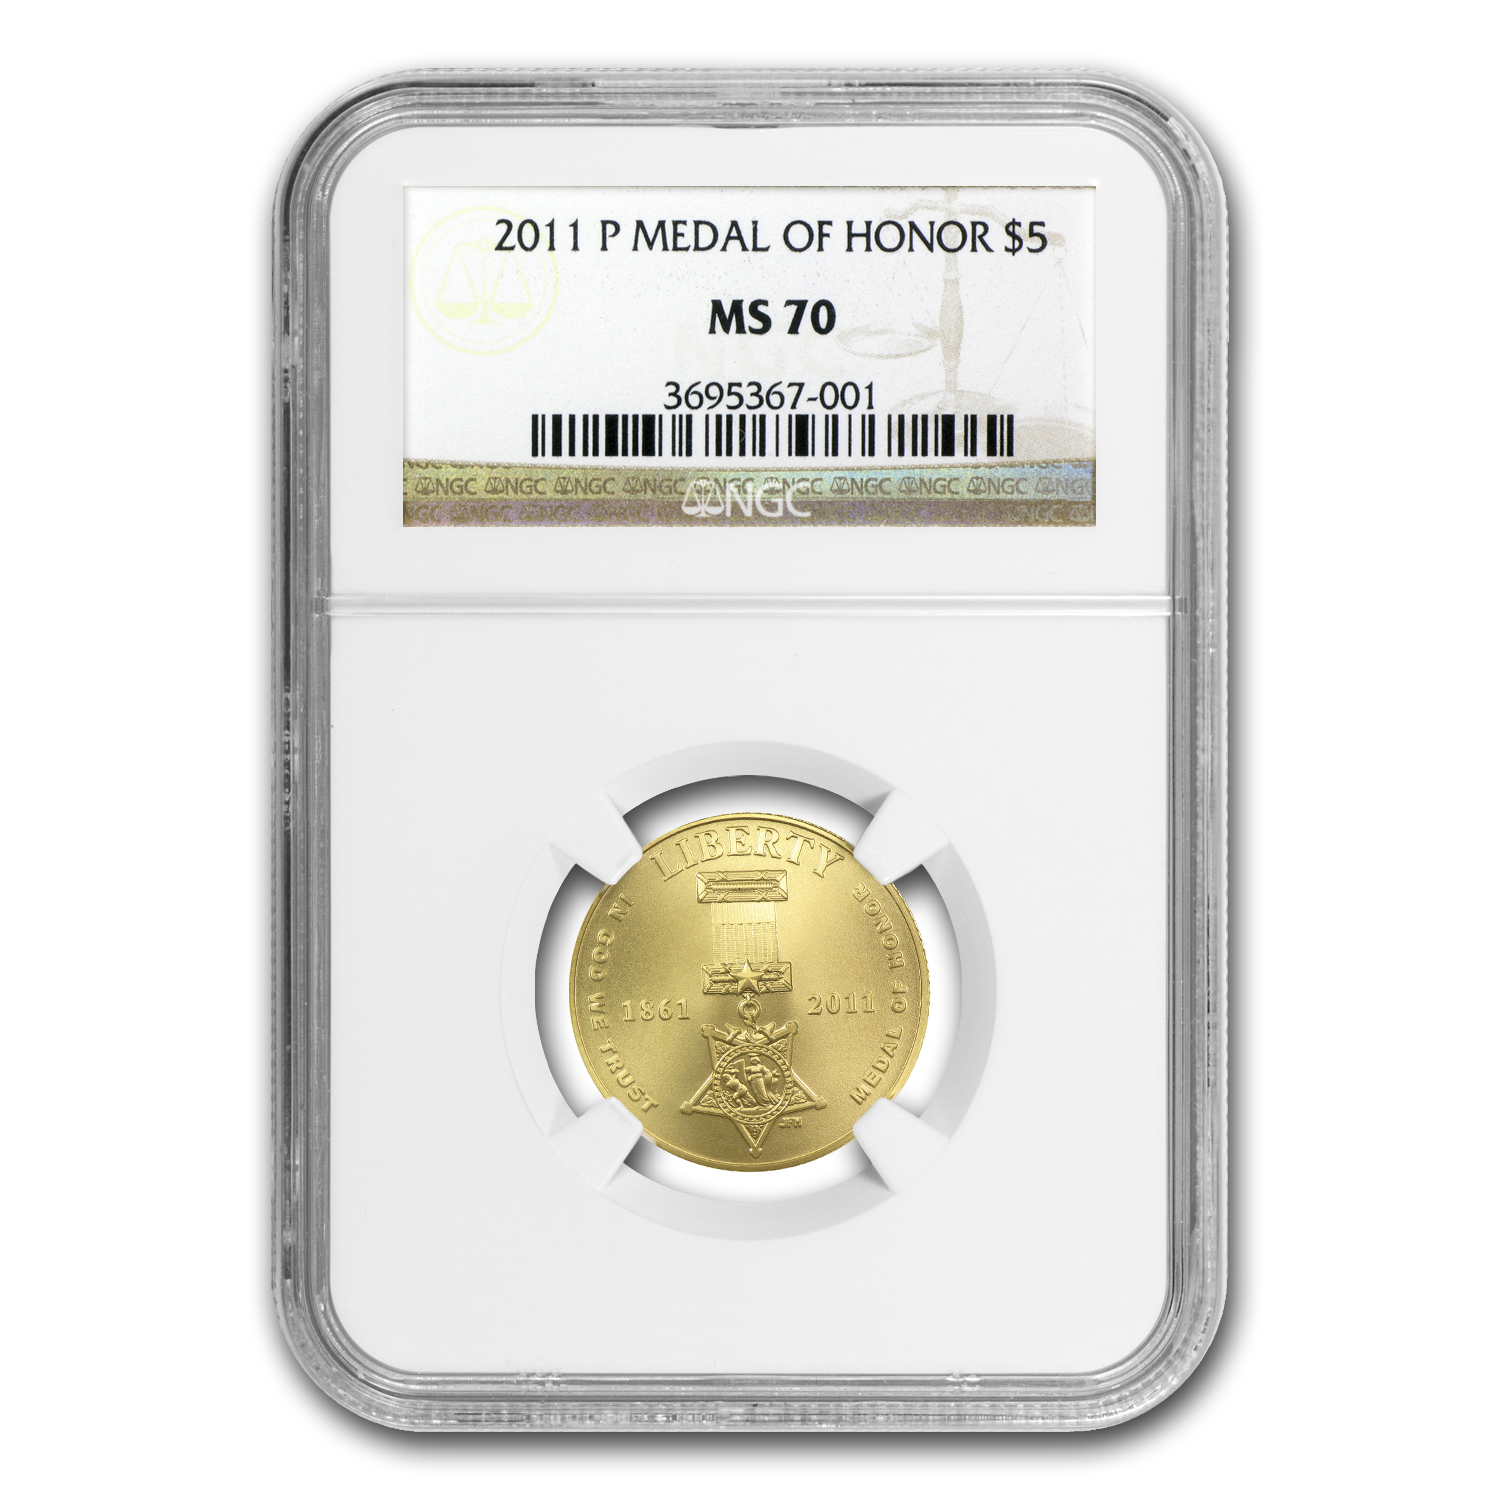 2011-P Gold $5 Commemorative Medal of Honor MS-70 NGC